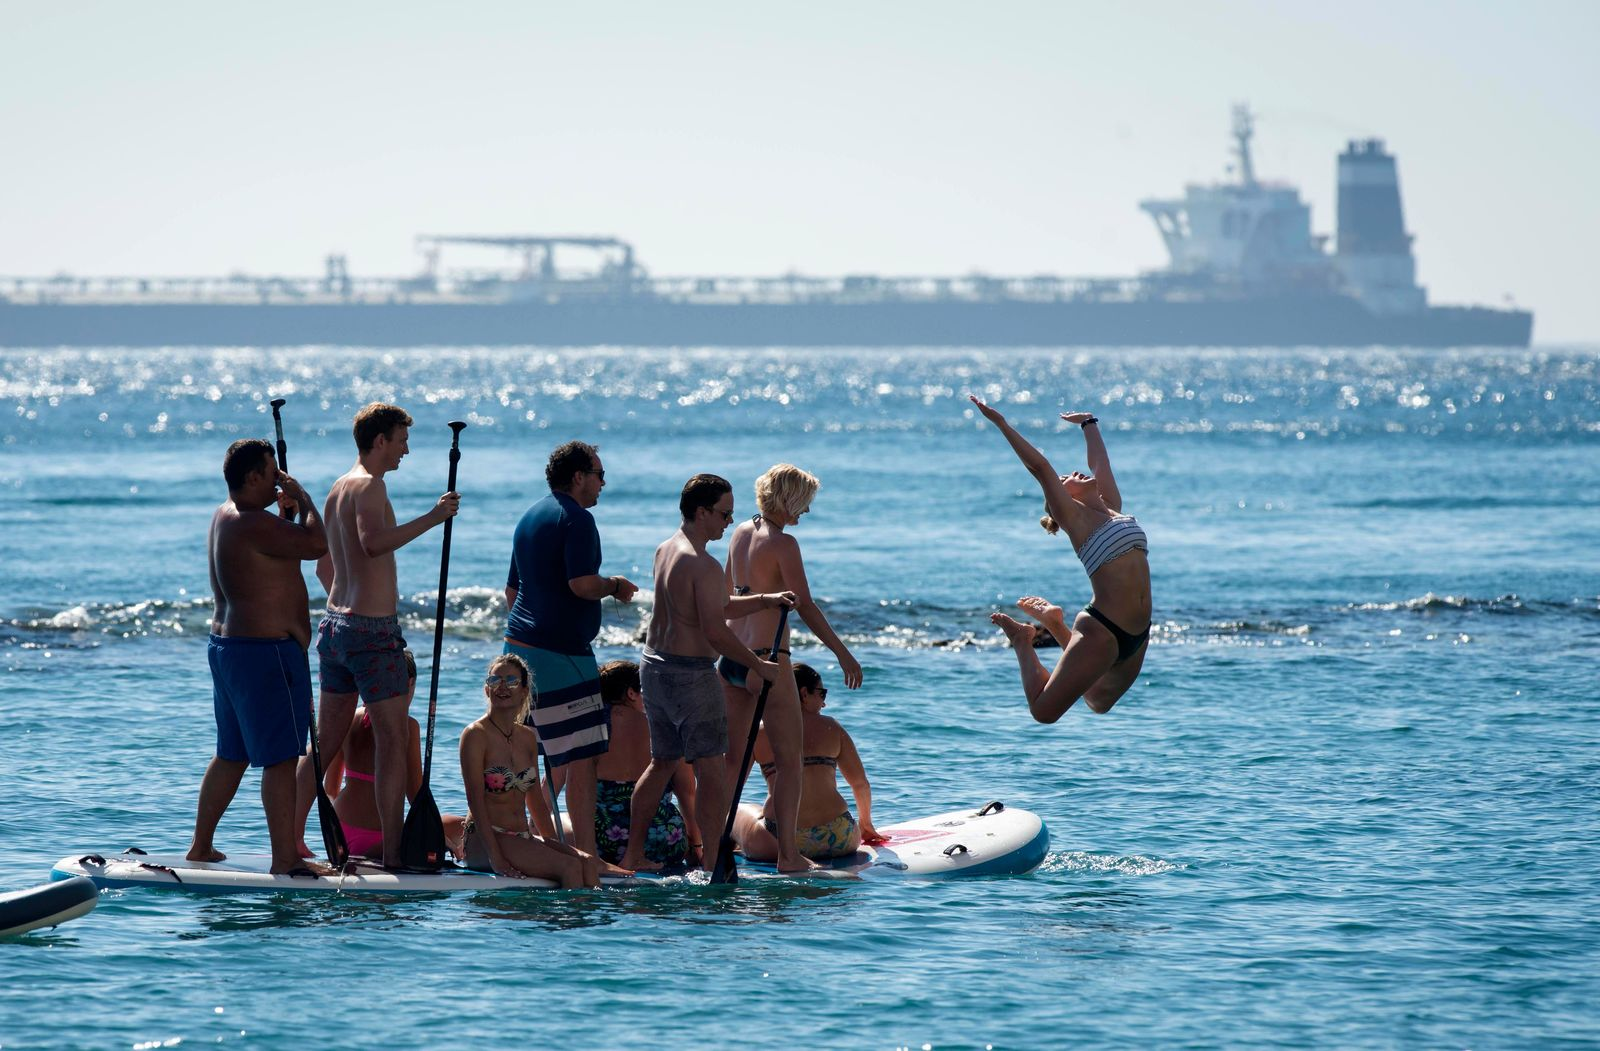 Renamed Adrian Aryra 1 super tanker is seen in background as people cool-off in the water in the British territory of Gibraltar, Sunday, Aug. 18, 2019.{ } (AP Photo/Marcos Moreno)